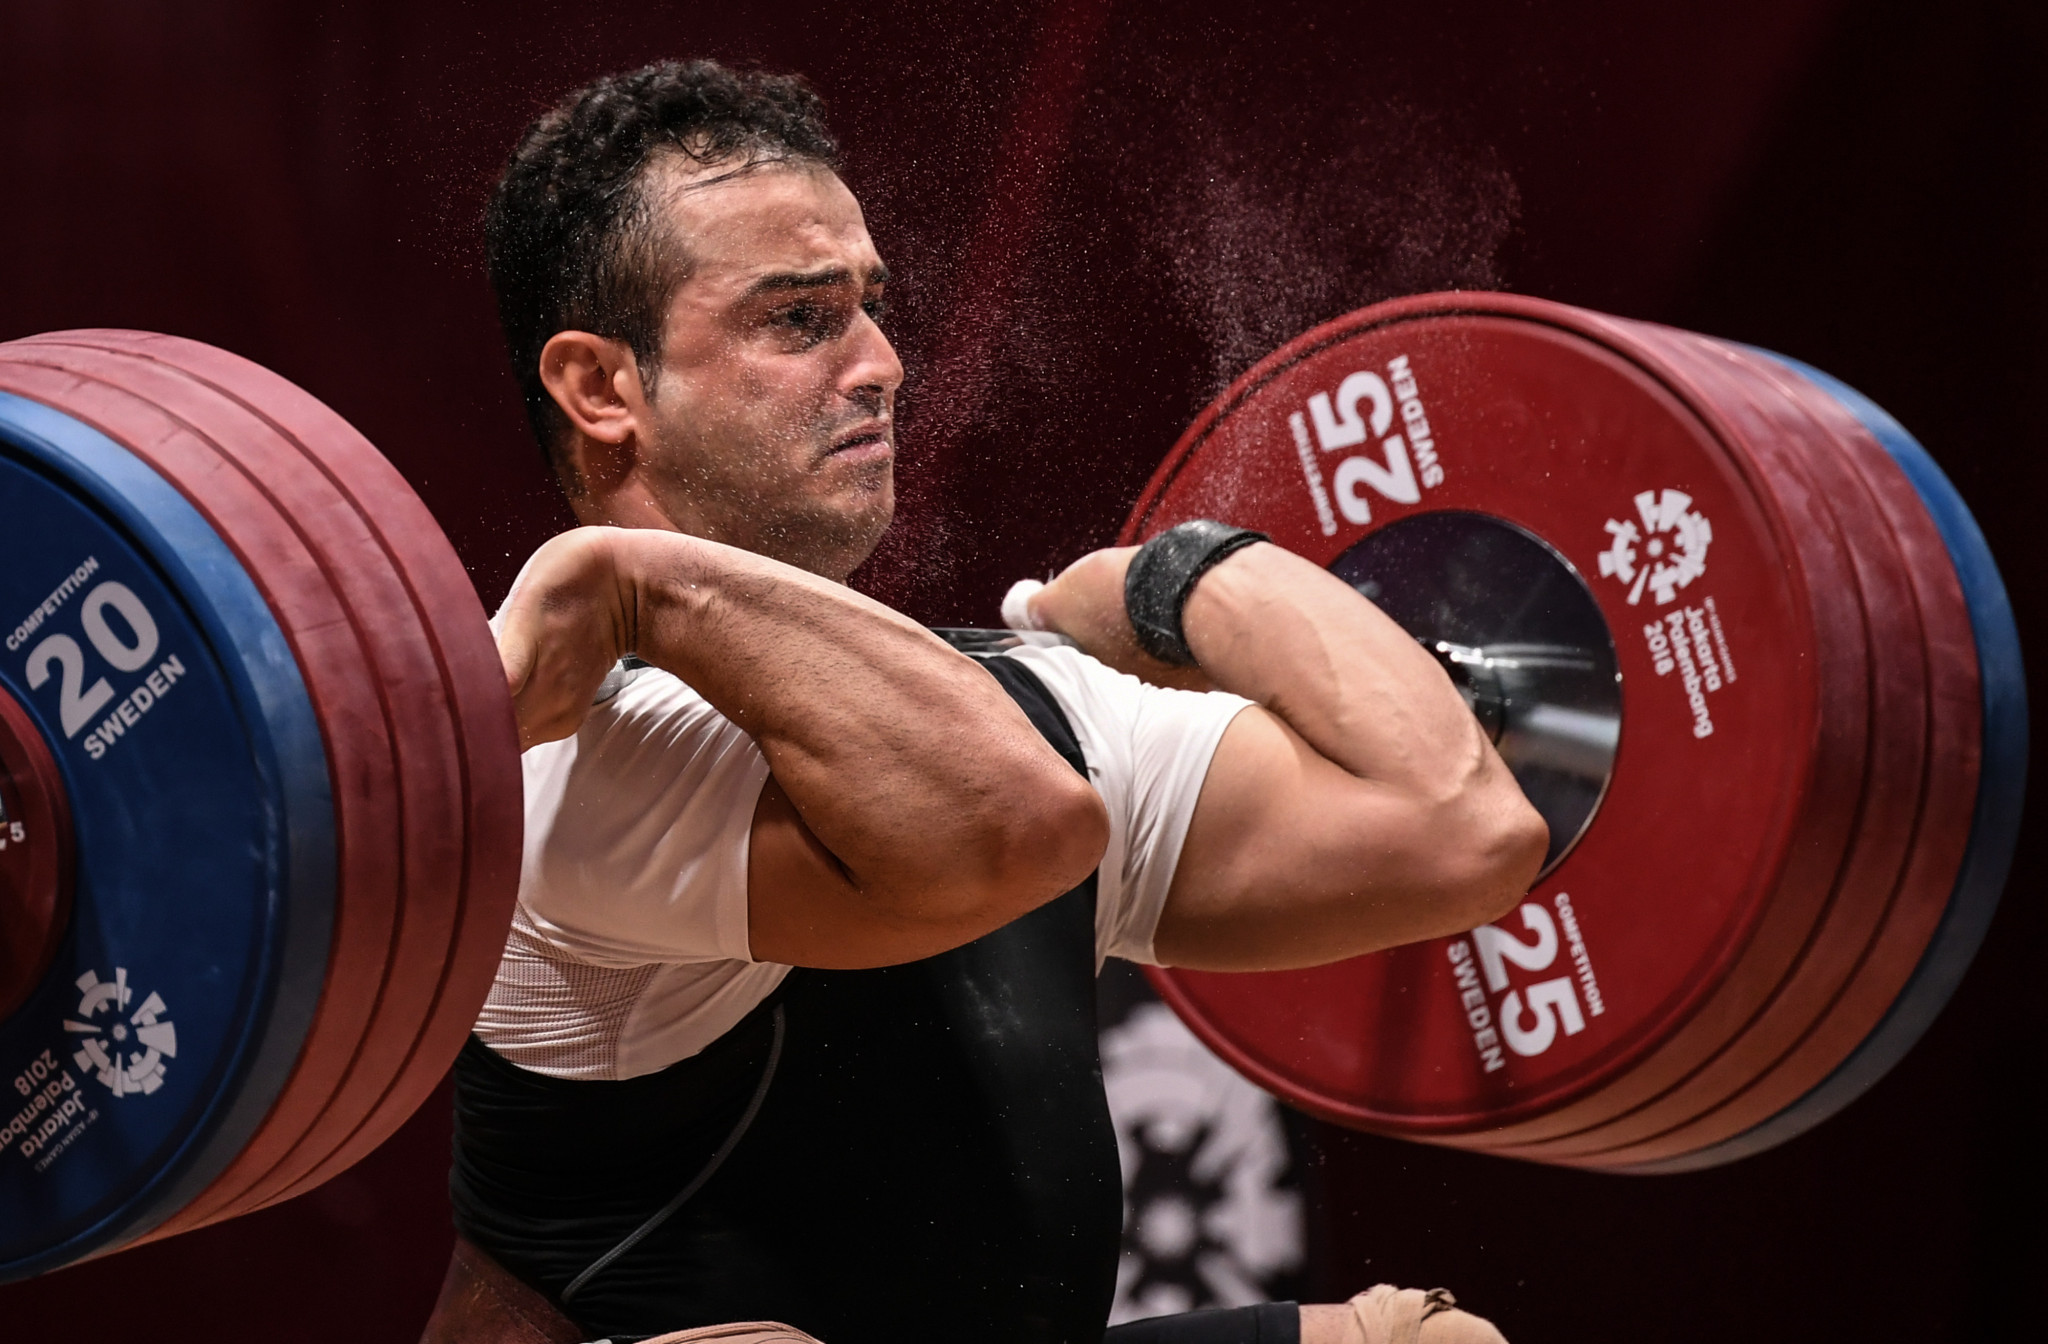 Iran's top weightlifter out of World Championships after dislocating shoulder